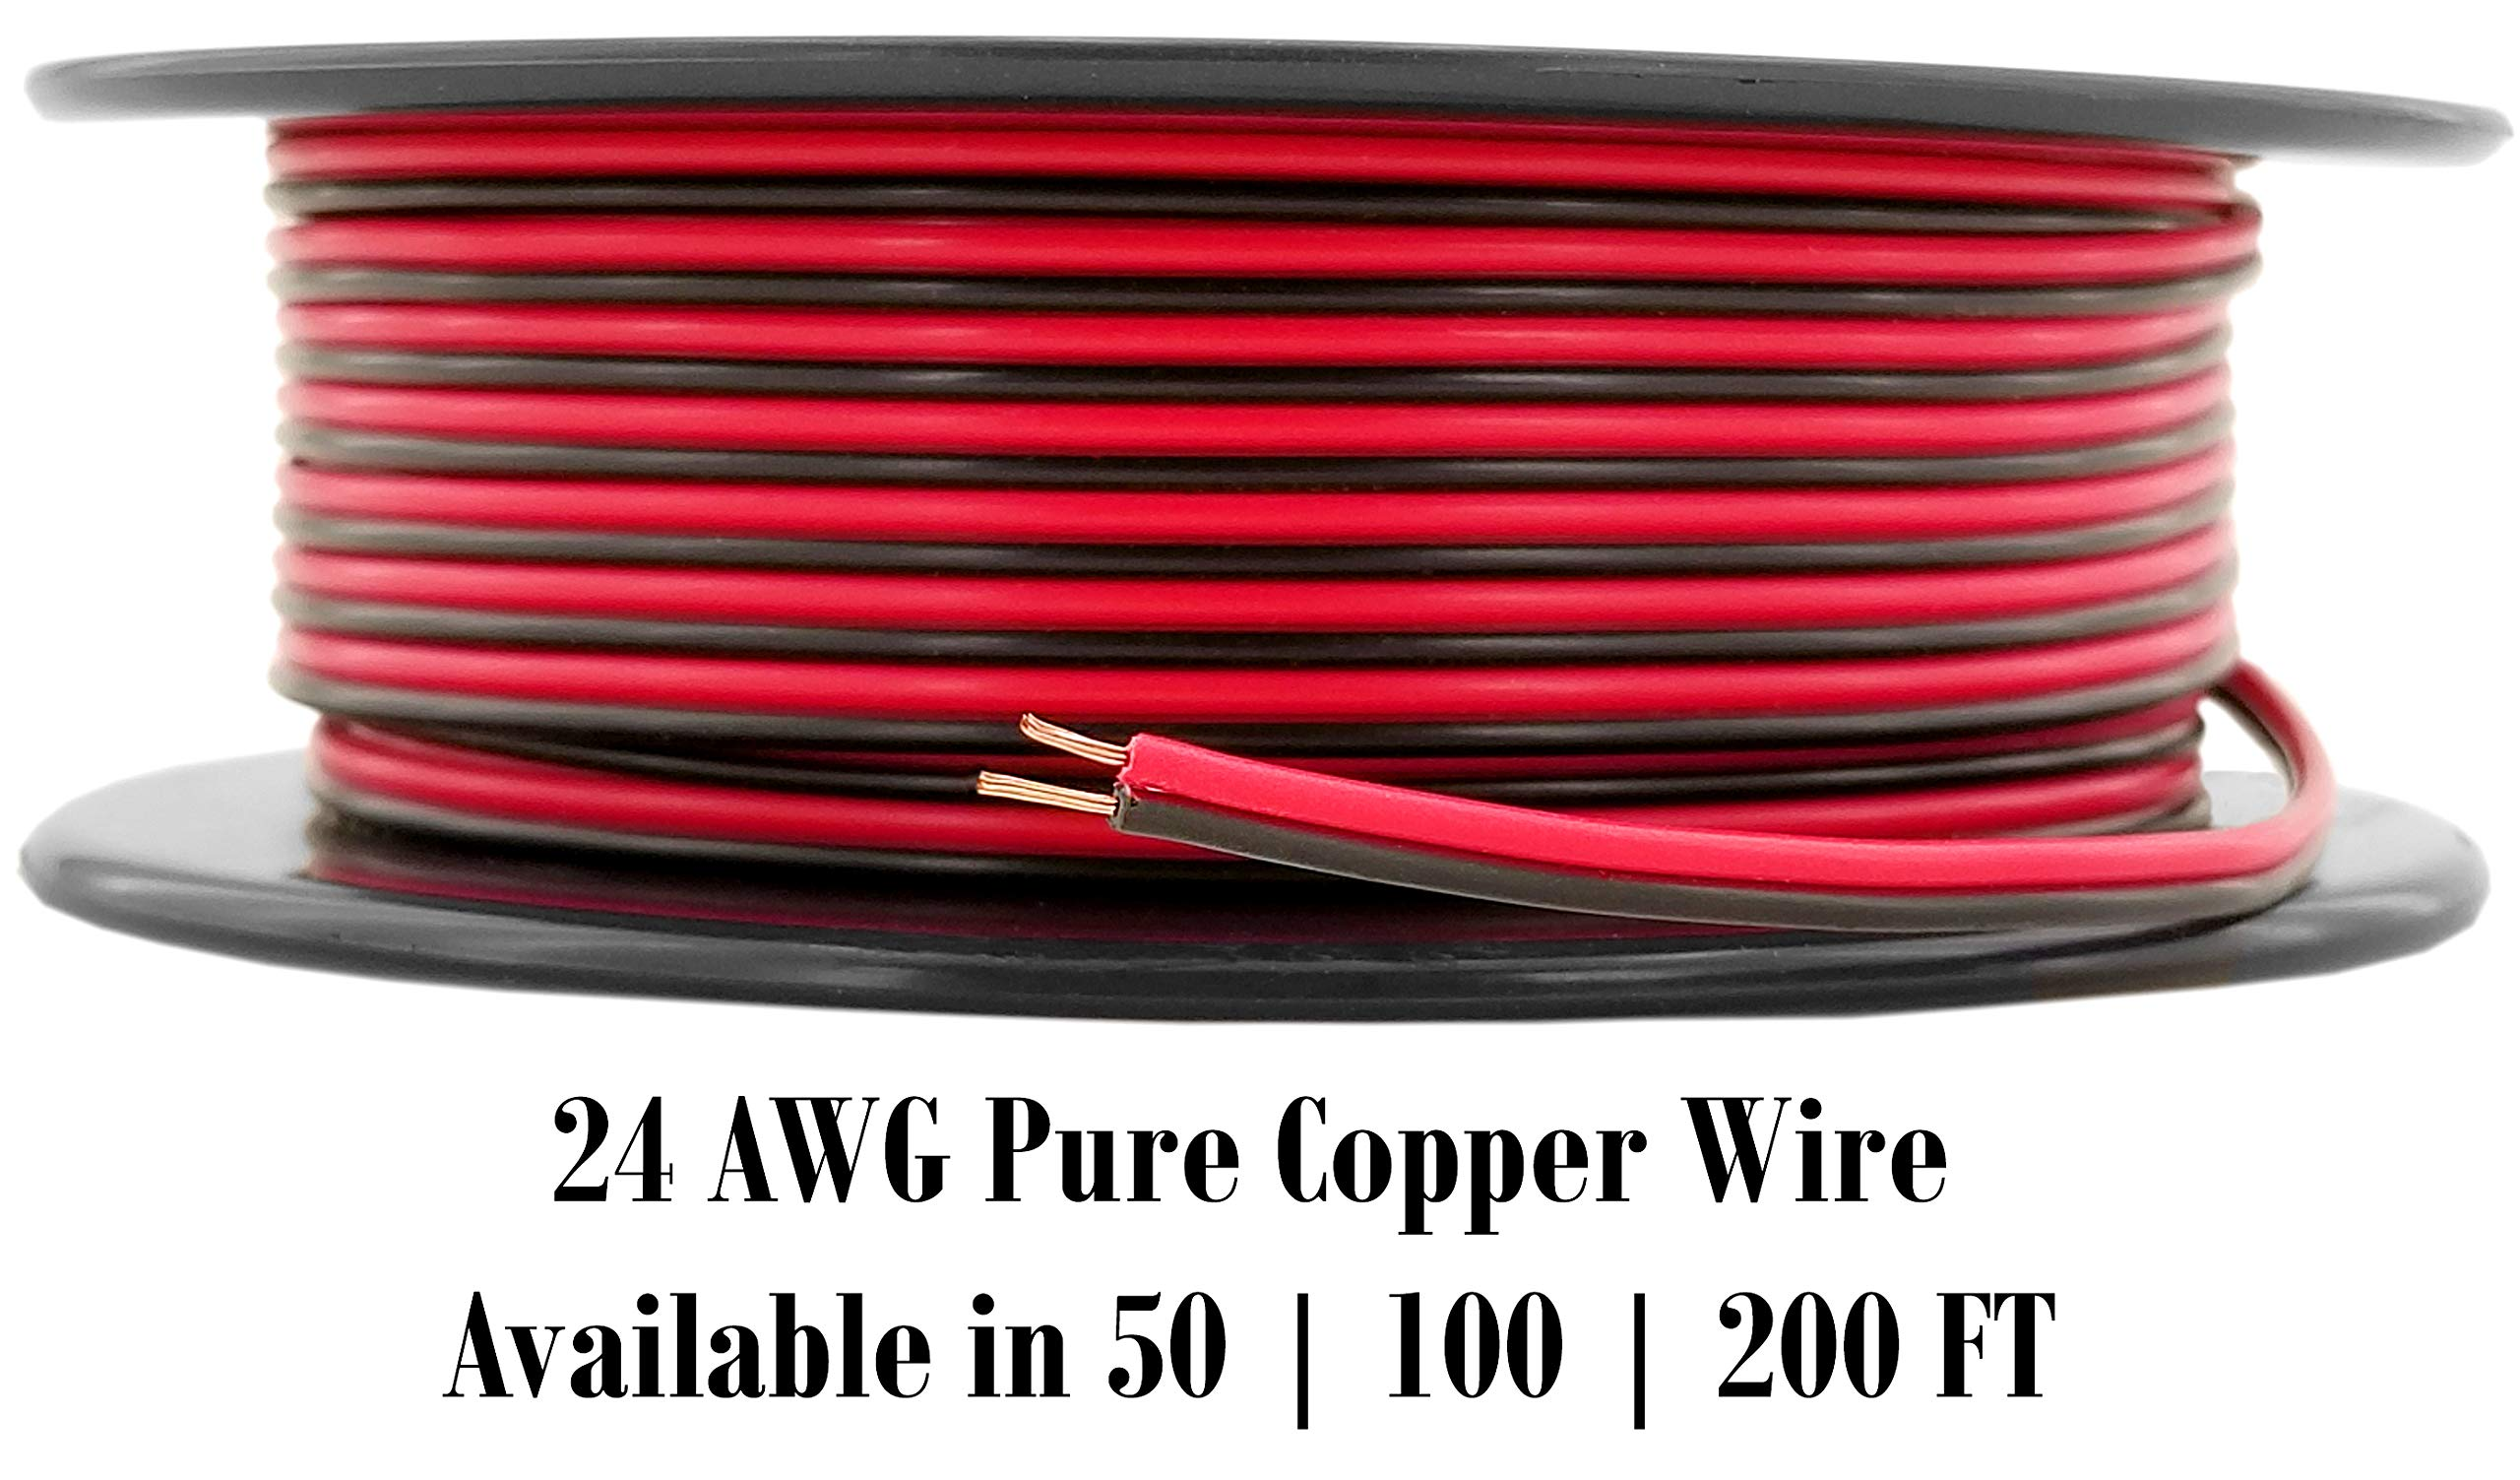 24 AWG (American Wire Gauge) 200 feet 99.9% OFC Oxygen Free Copper, Red Black Bonded Zip Cord Speaker Cable for Car Audio, Home Theater, LED Light Wiring (Also Available in 50' & 100' roll)